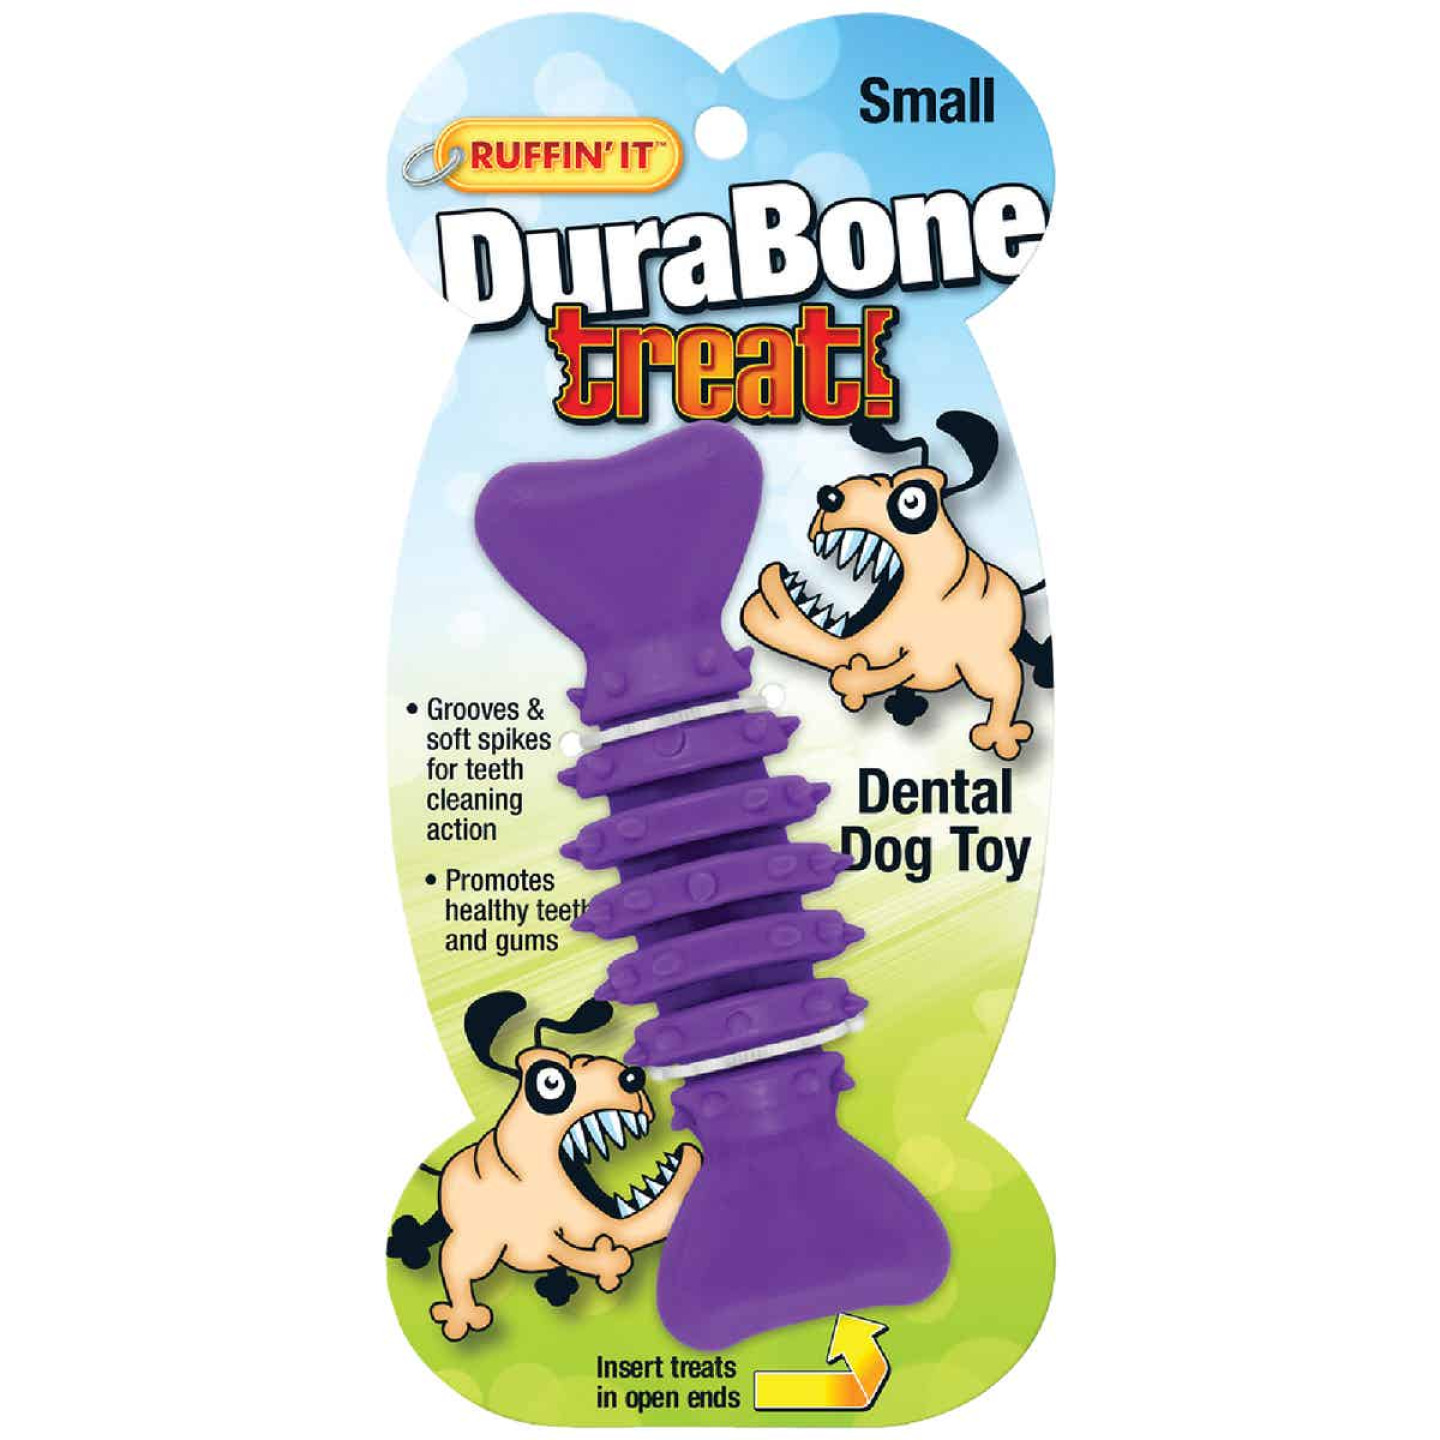 Westminster Pet Ruffin' it Durabone 4.75 In. Chew Dental Dog Toy Image 3